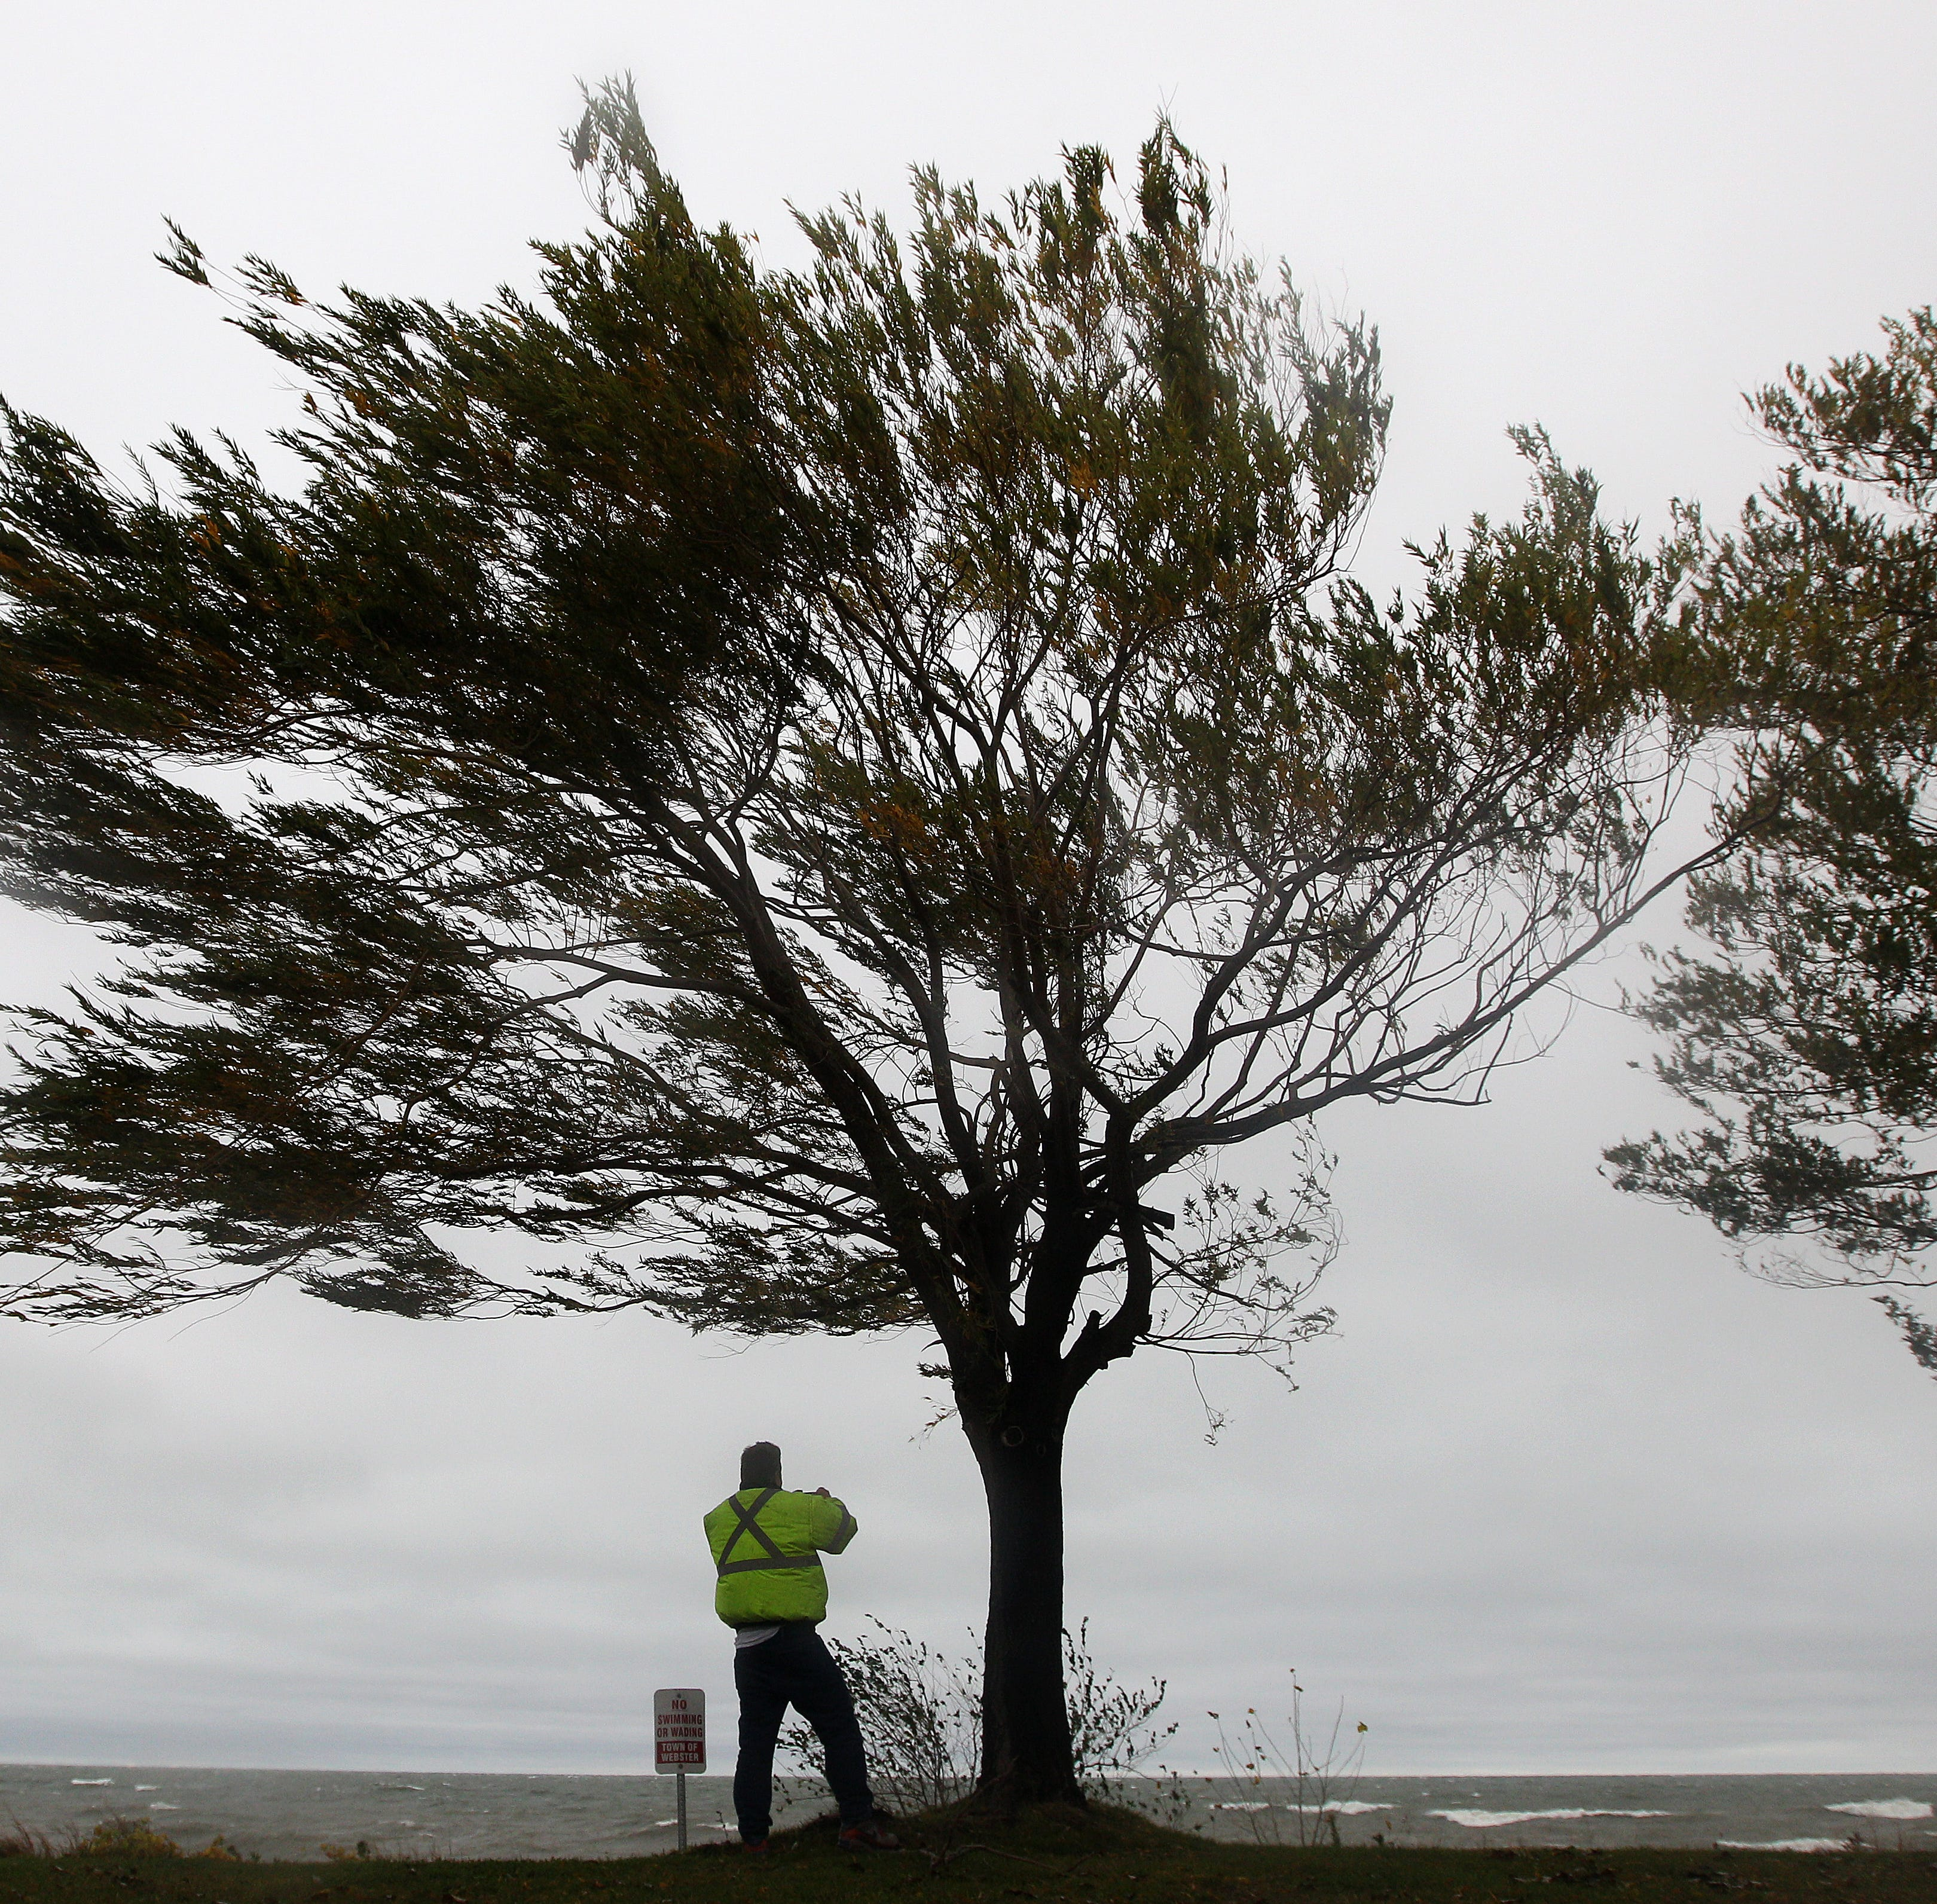 High wind warning posted for Monroe County; gusts to 60 mph possible